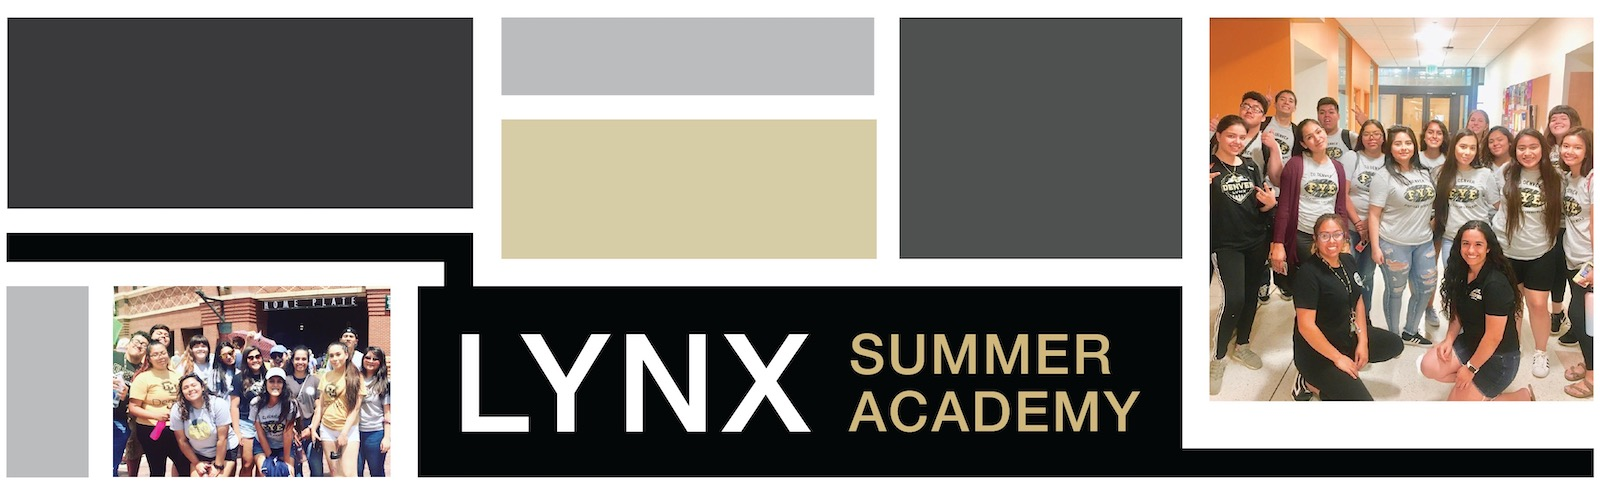 CU Denver Students at the Lynx Summer Academy